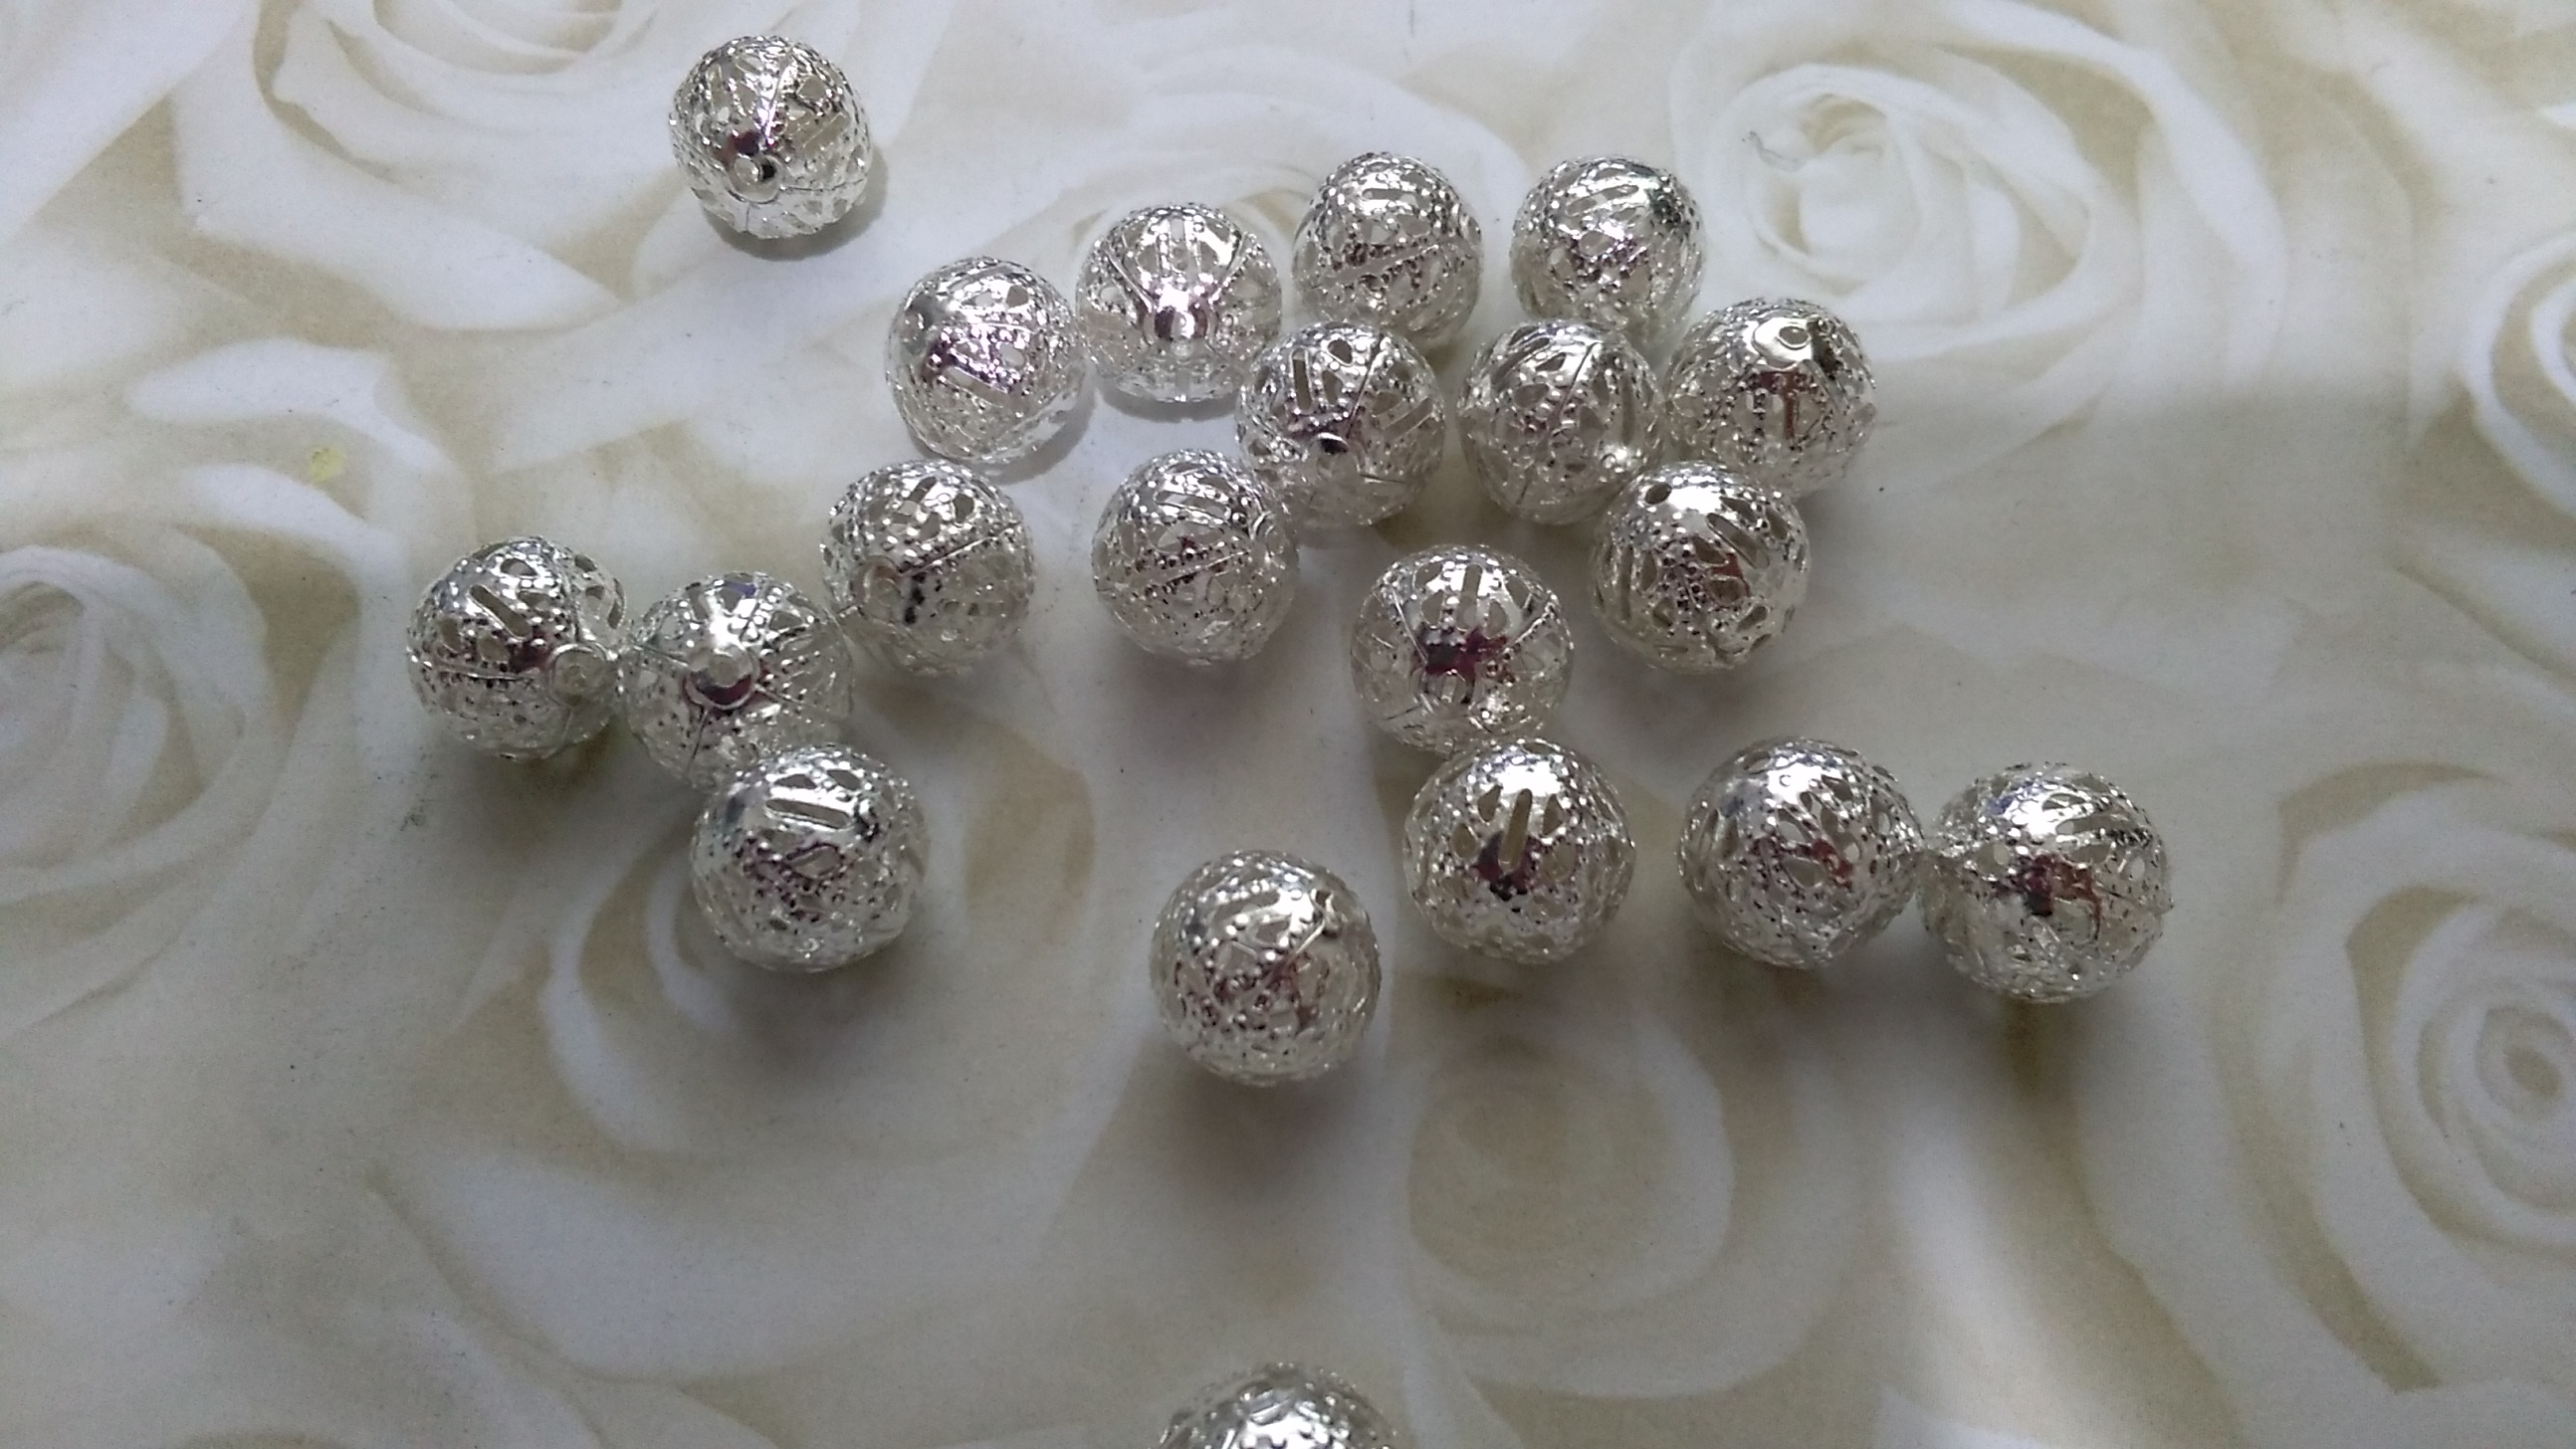 Bright Silver Toned Metal Ornate 10mm Beads